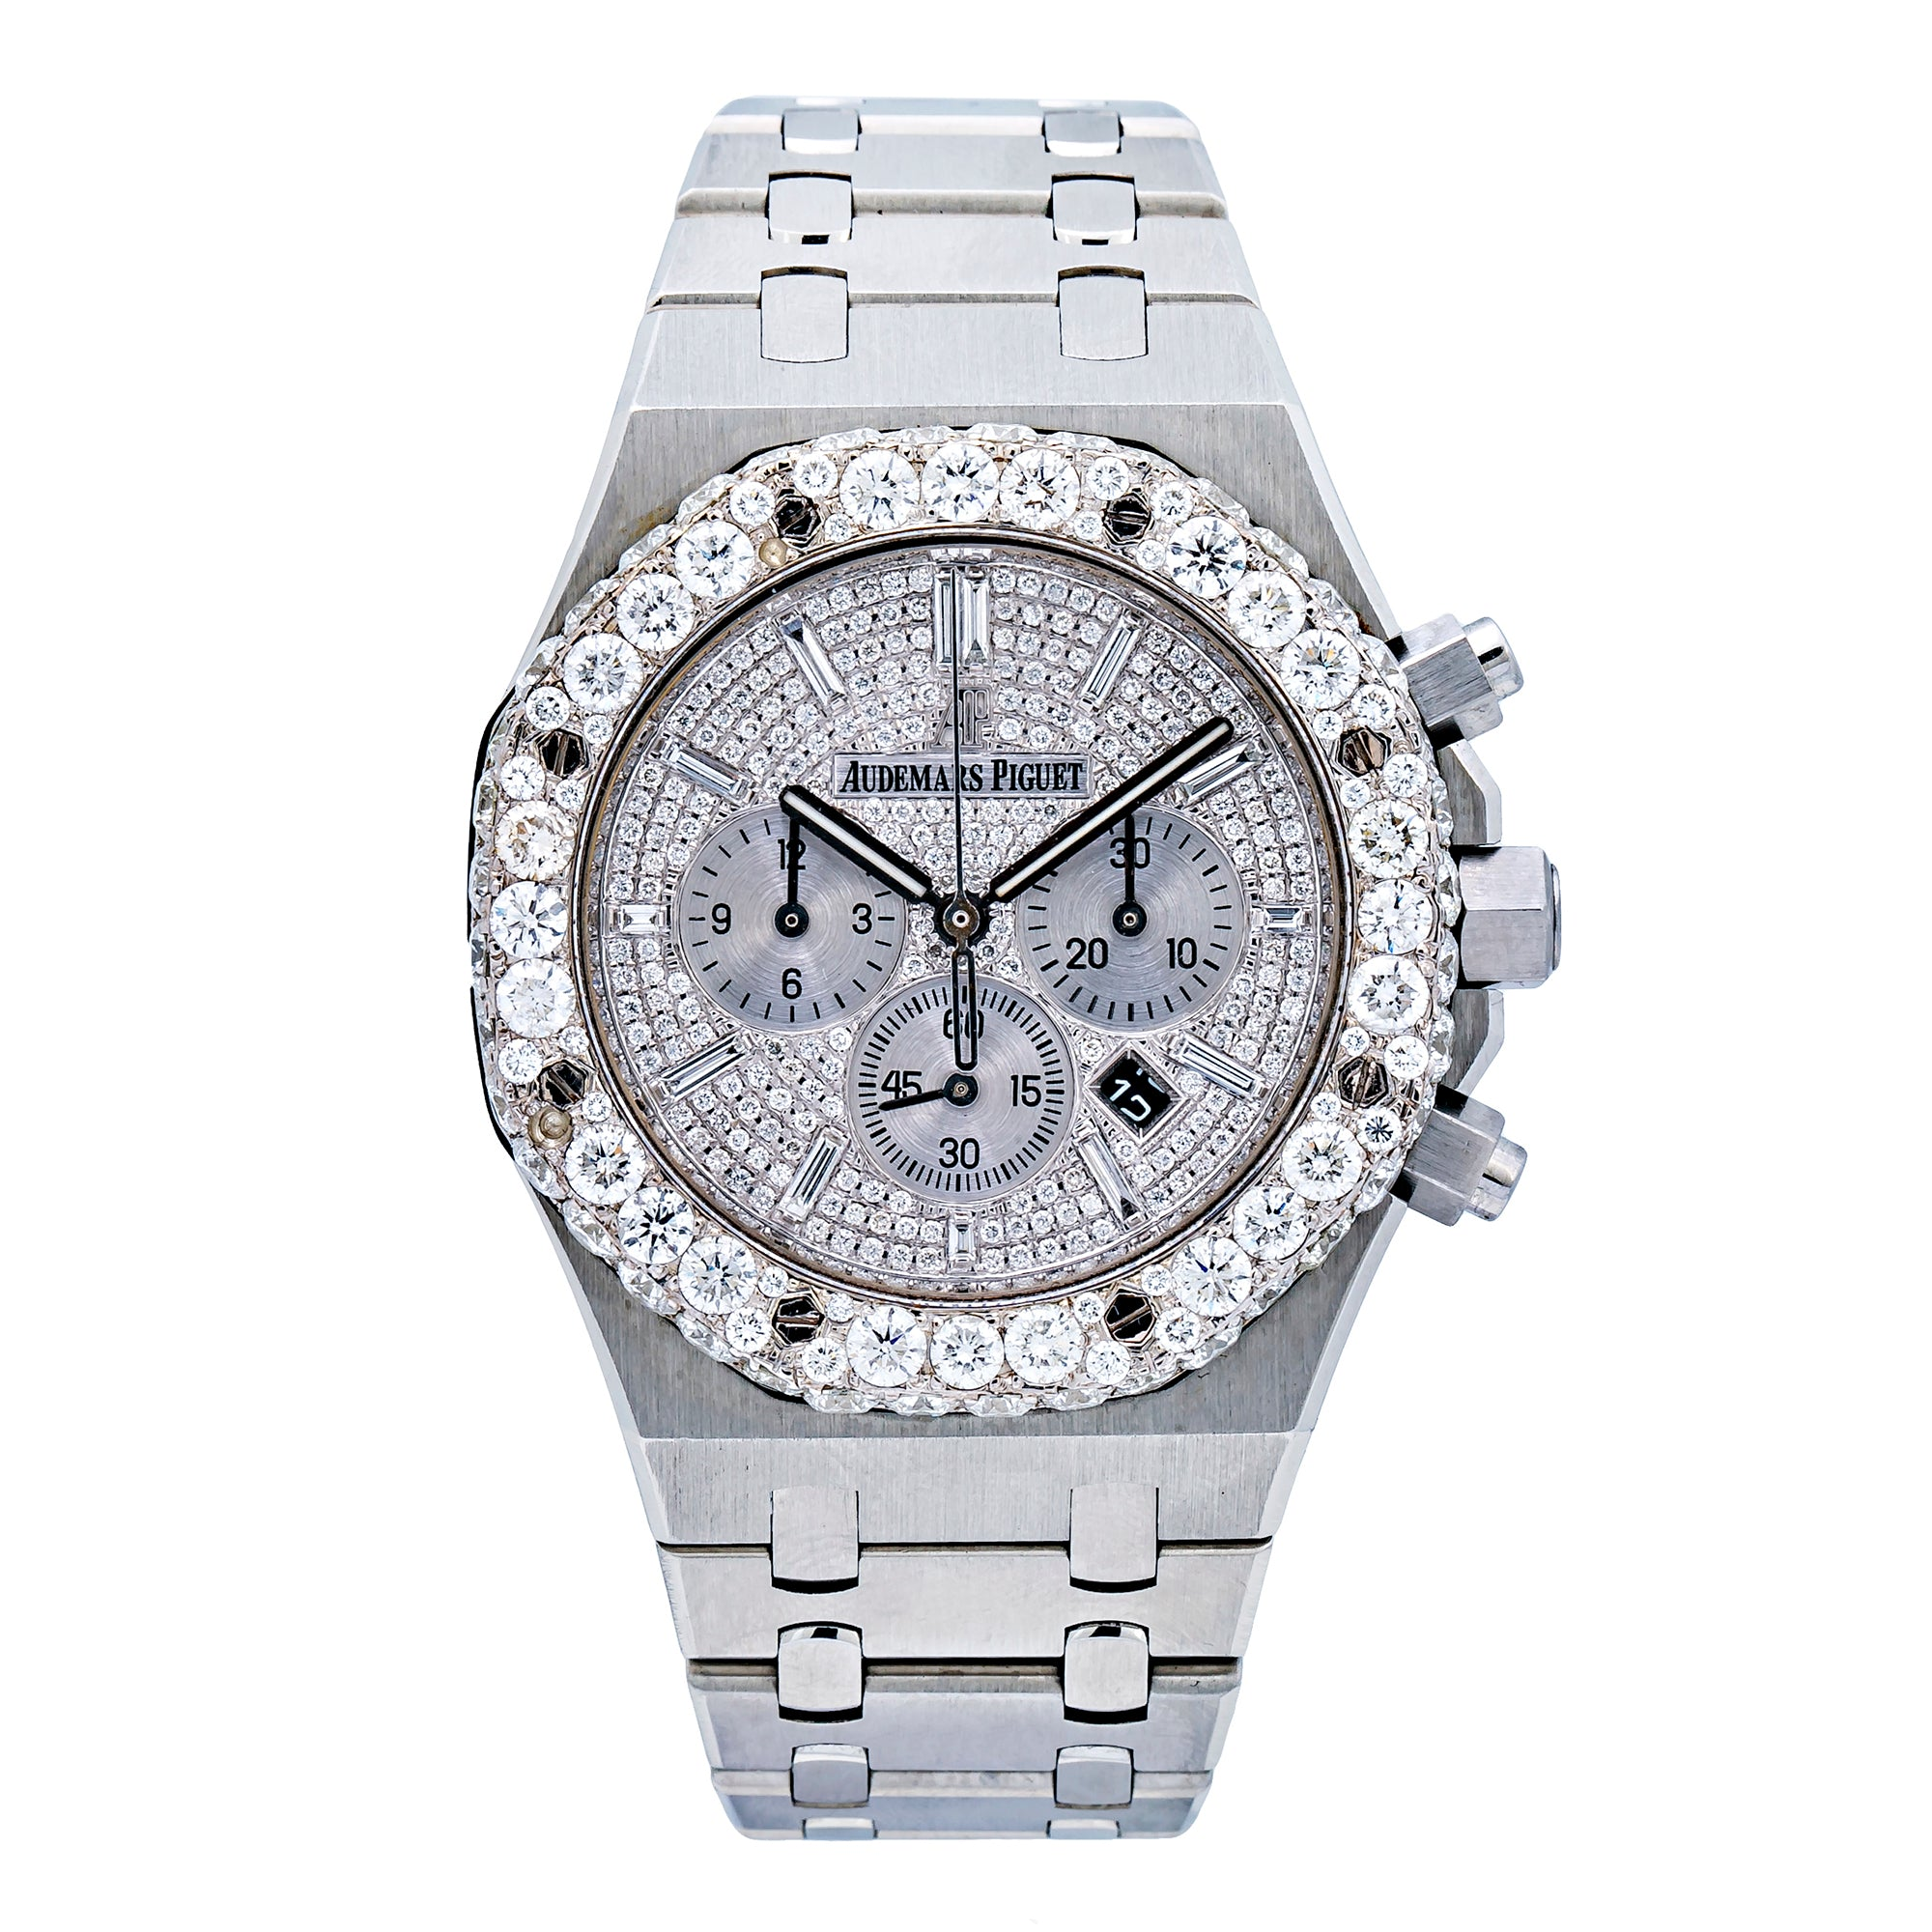 Audemars Piguet White Diamond Dial With Stainless Steel Bracelet